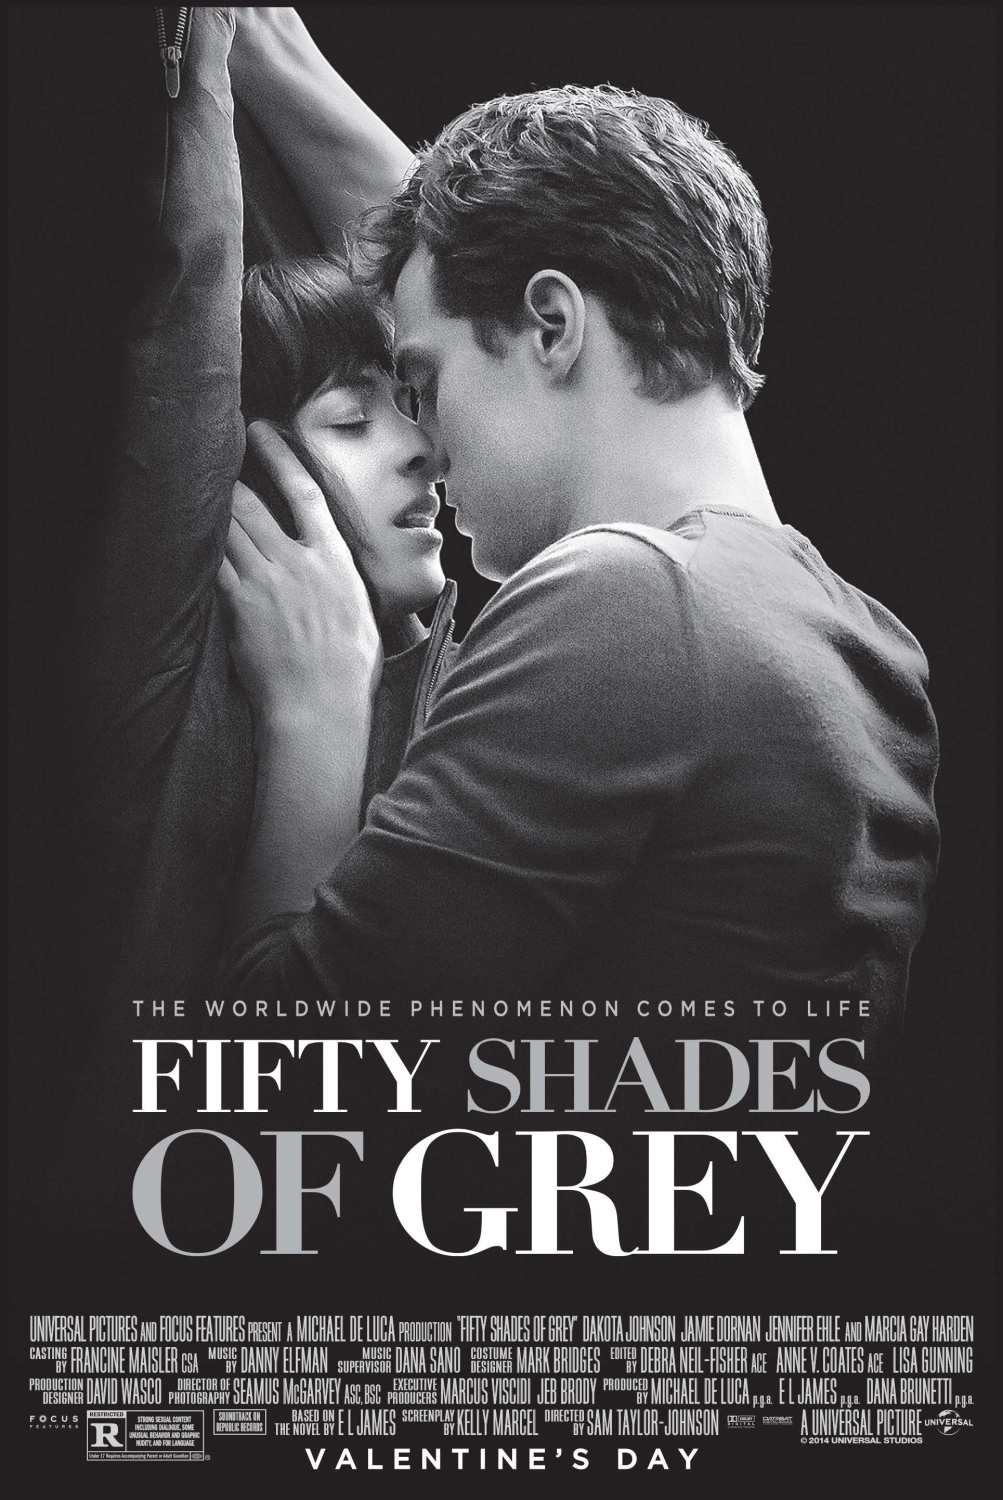 Adapted from 'Fifty Shades of Grey'.